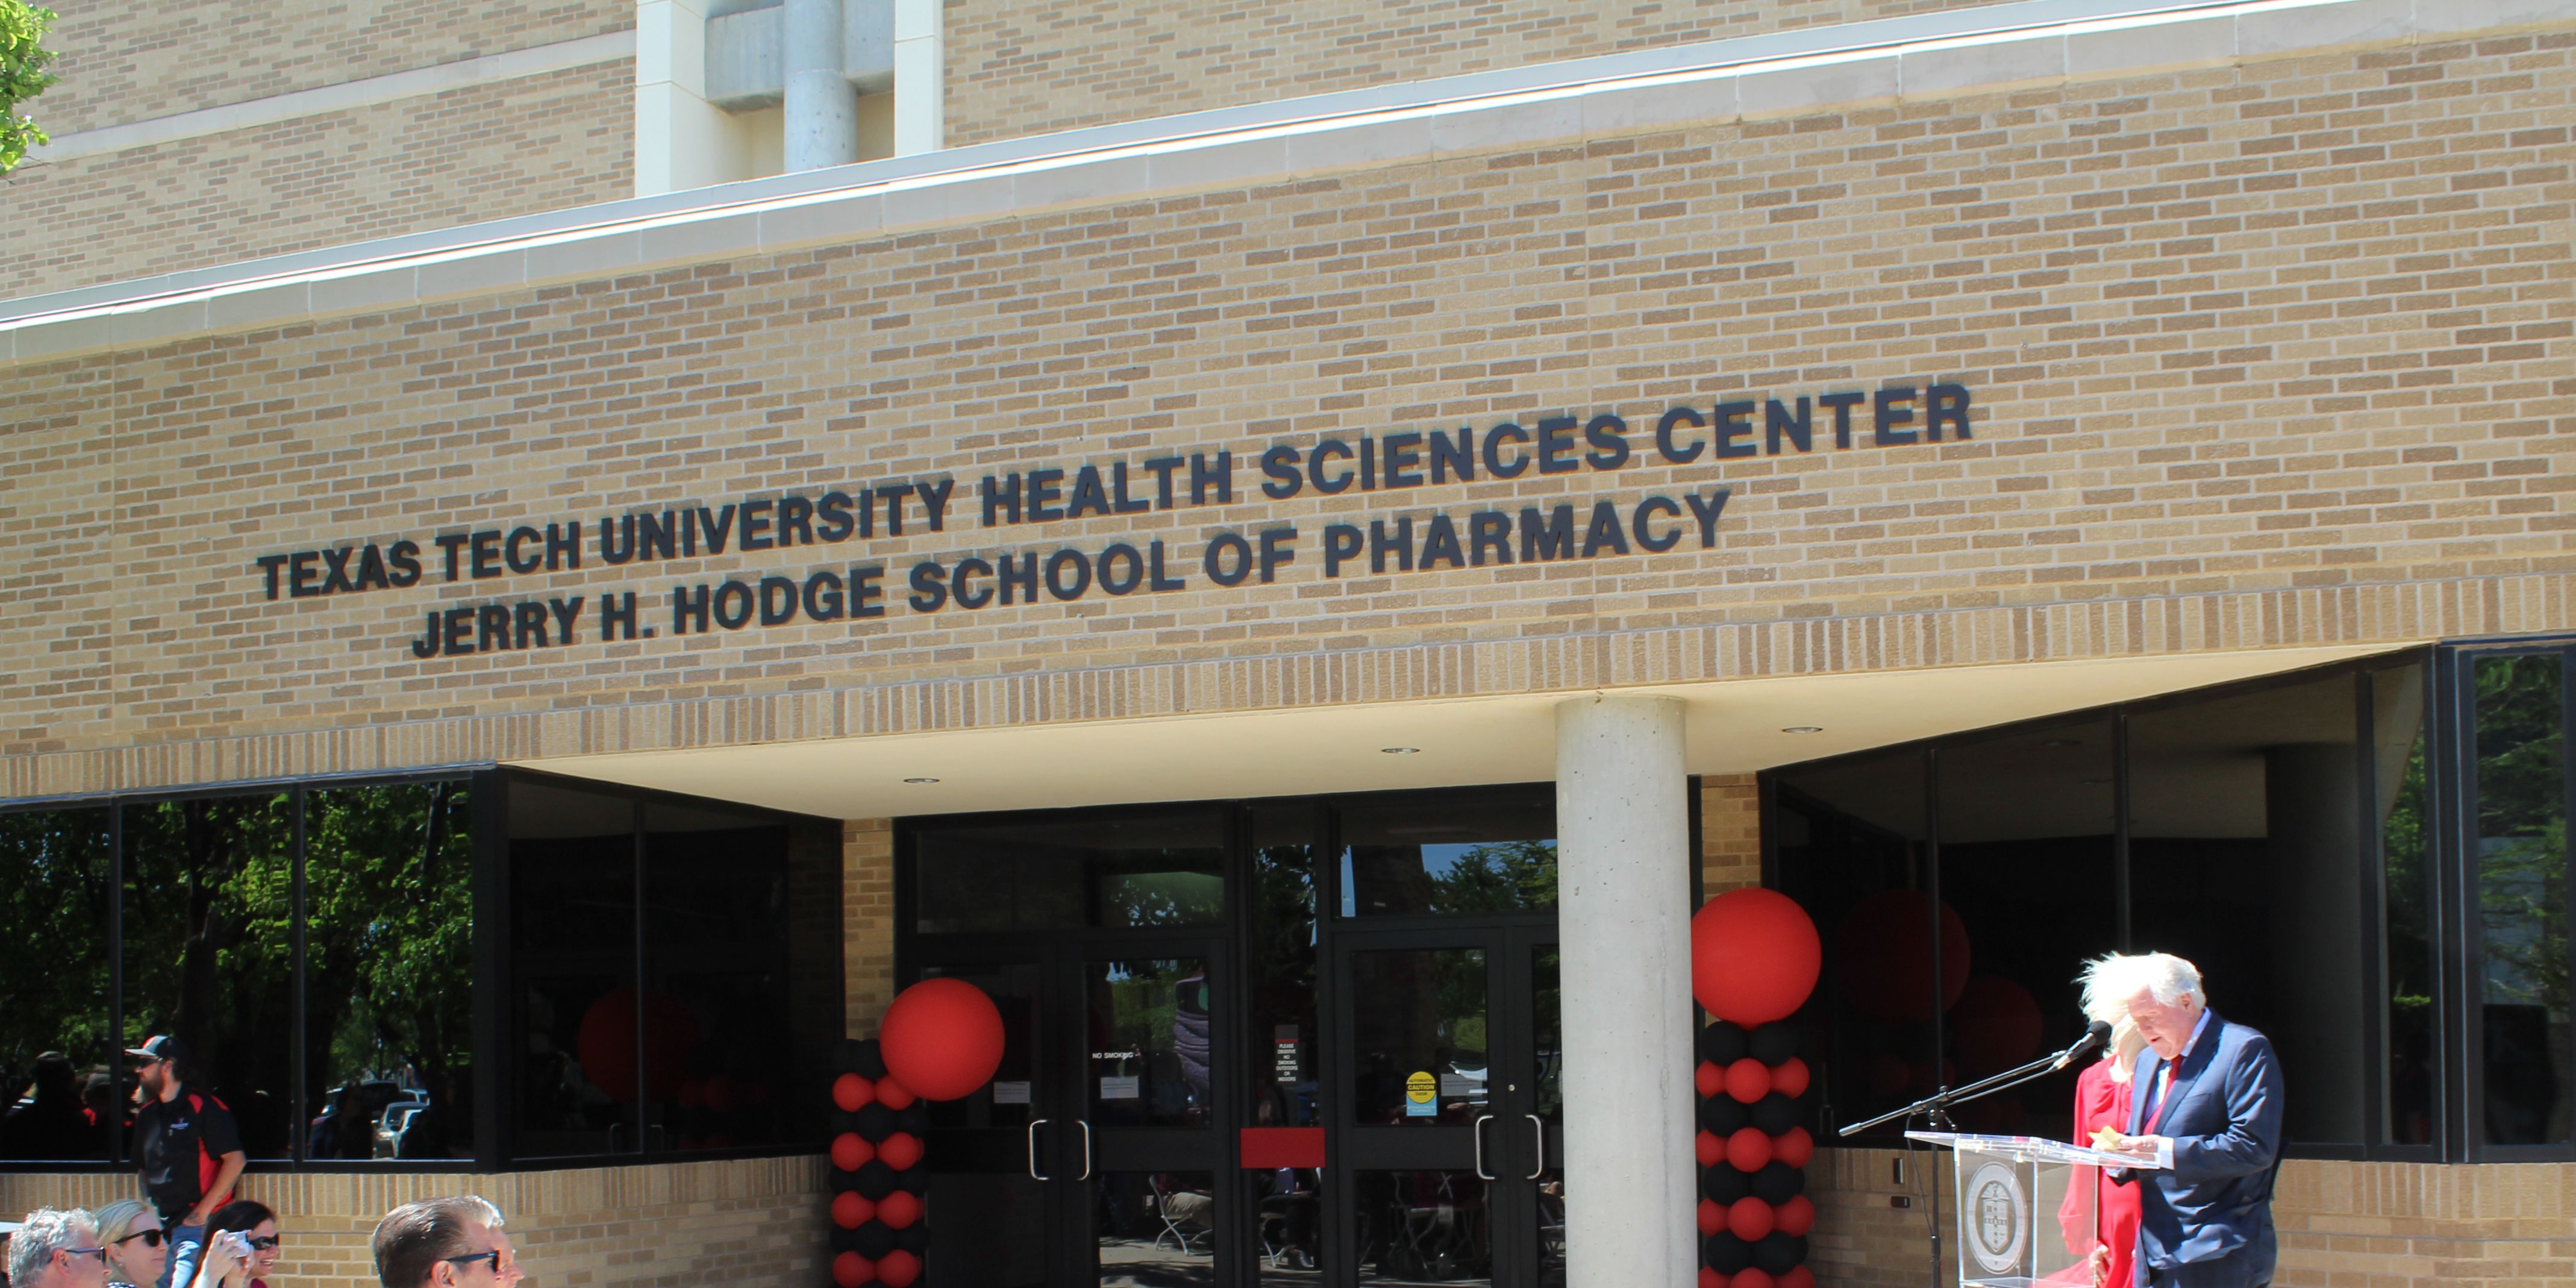 TTUHSC names its School of Pharmacy to honor Jerry Hodge